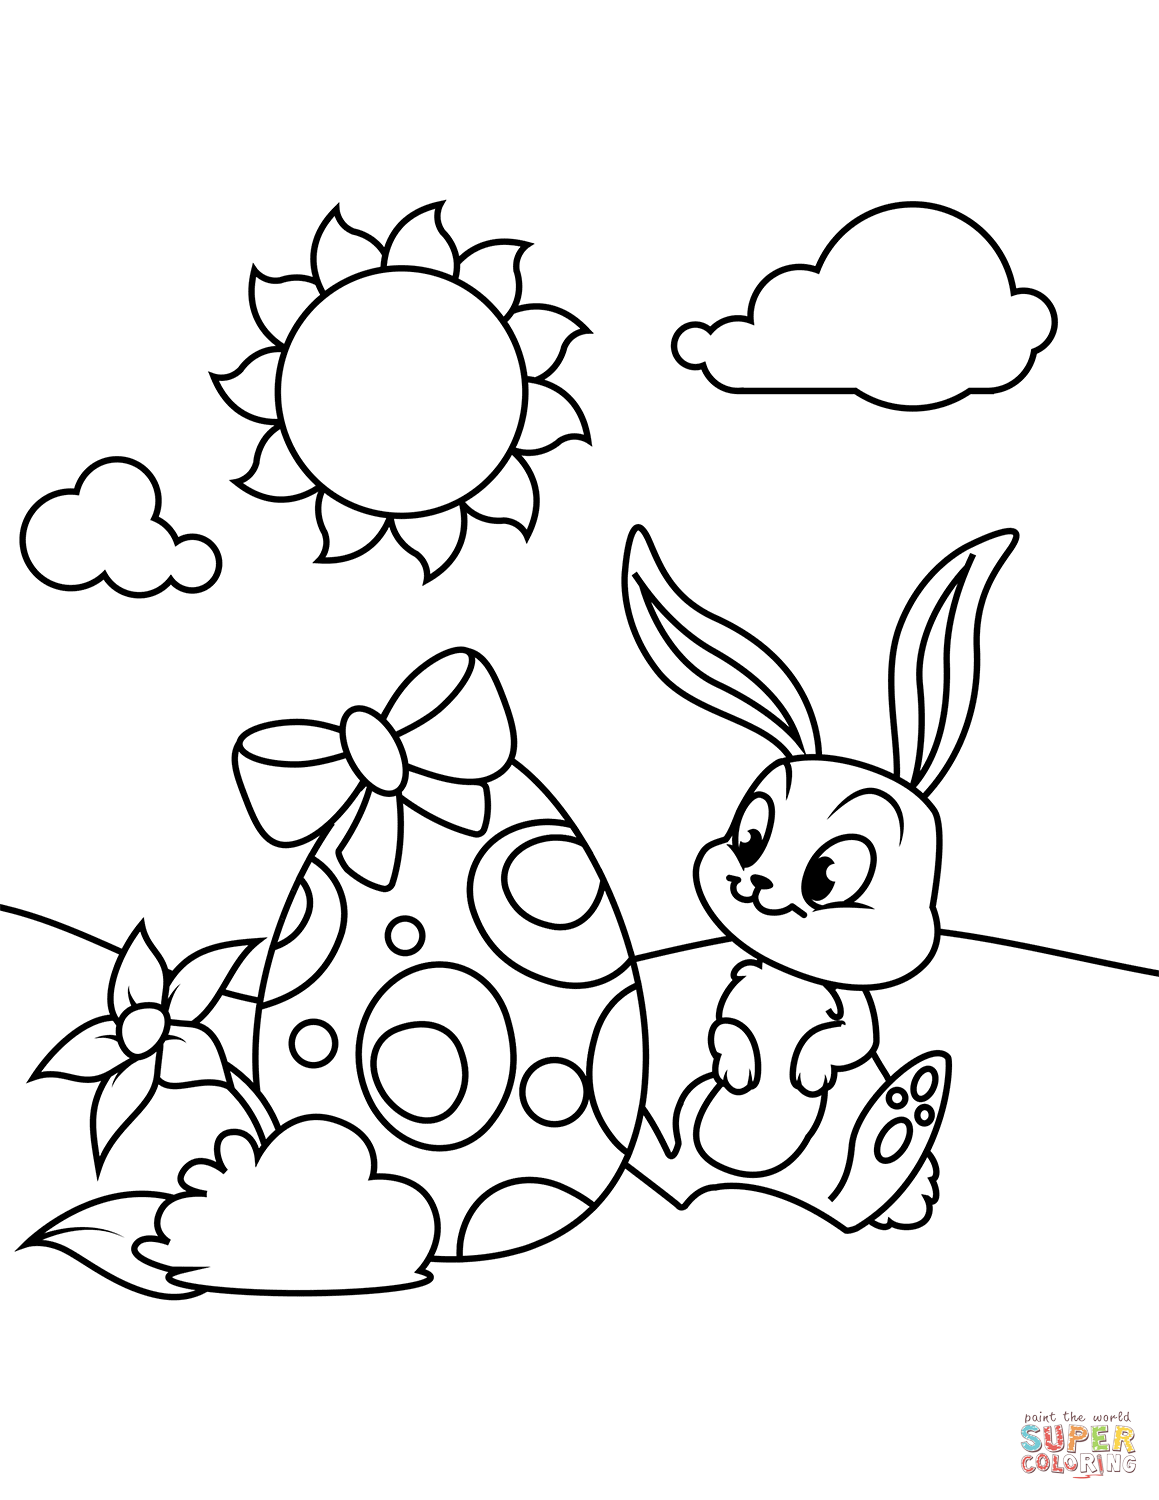 Cute Bunny And Easter Egg Coloring Page